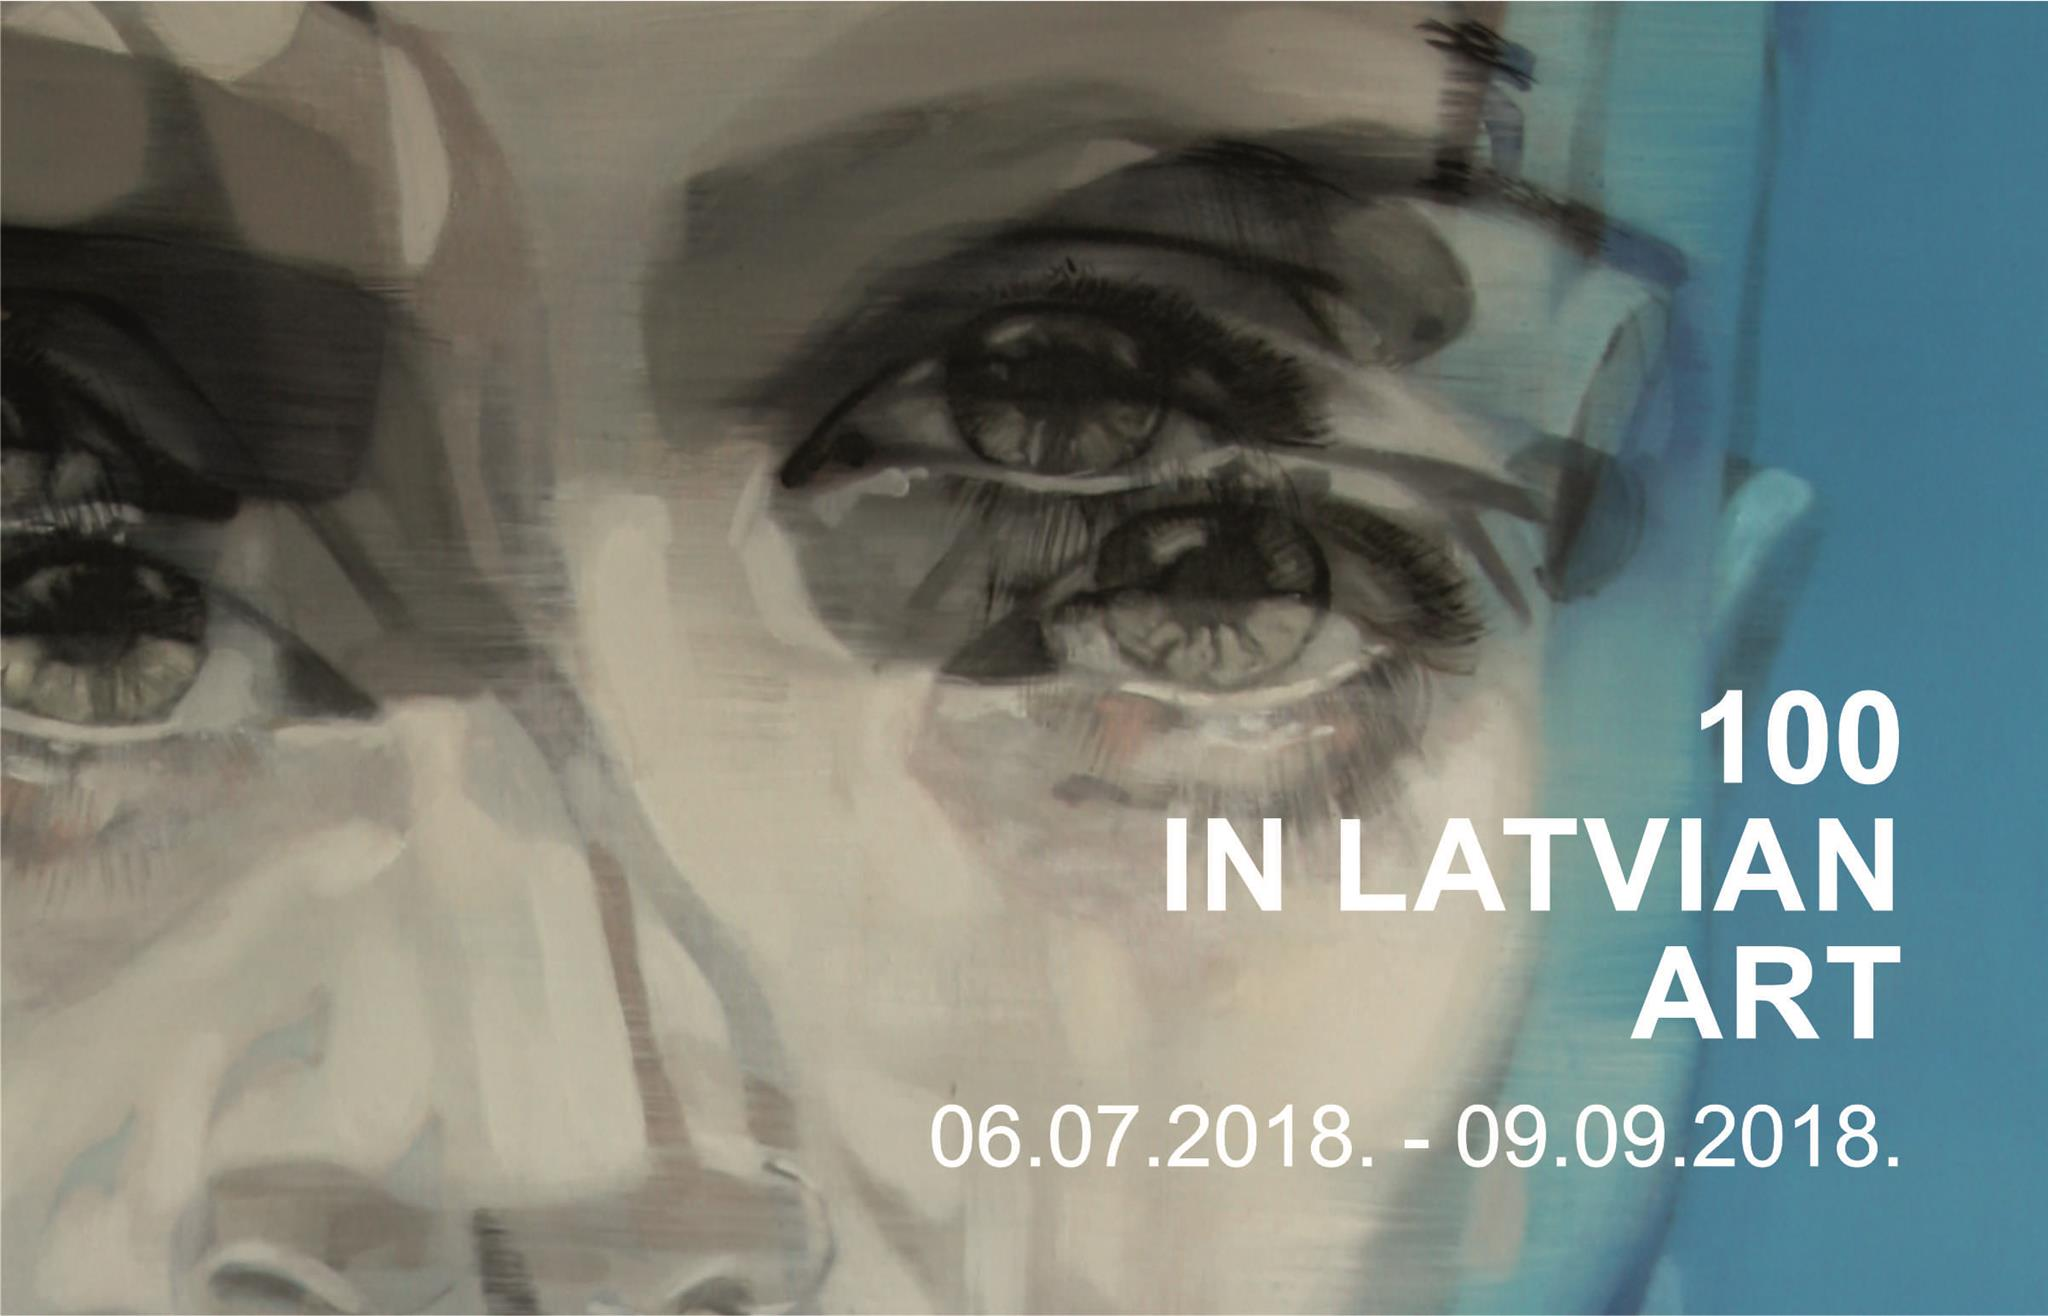 100 in Latvian art